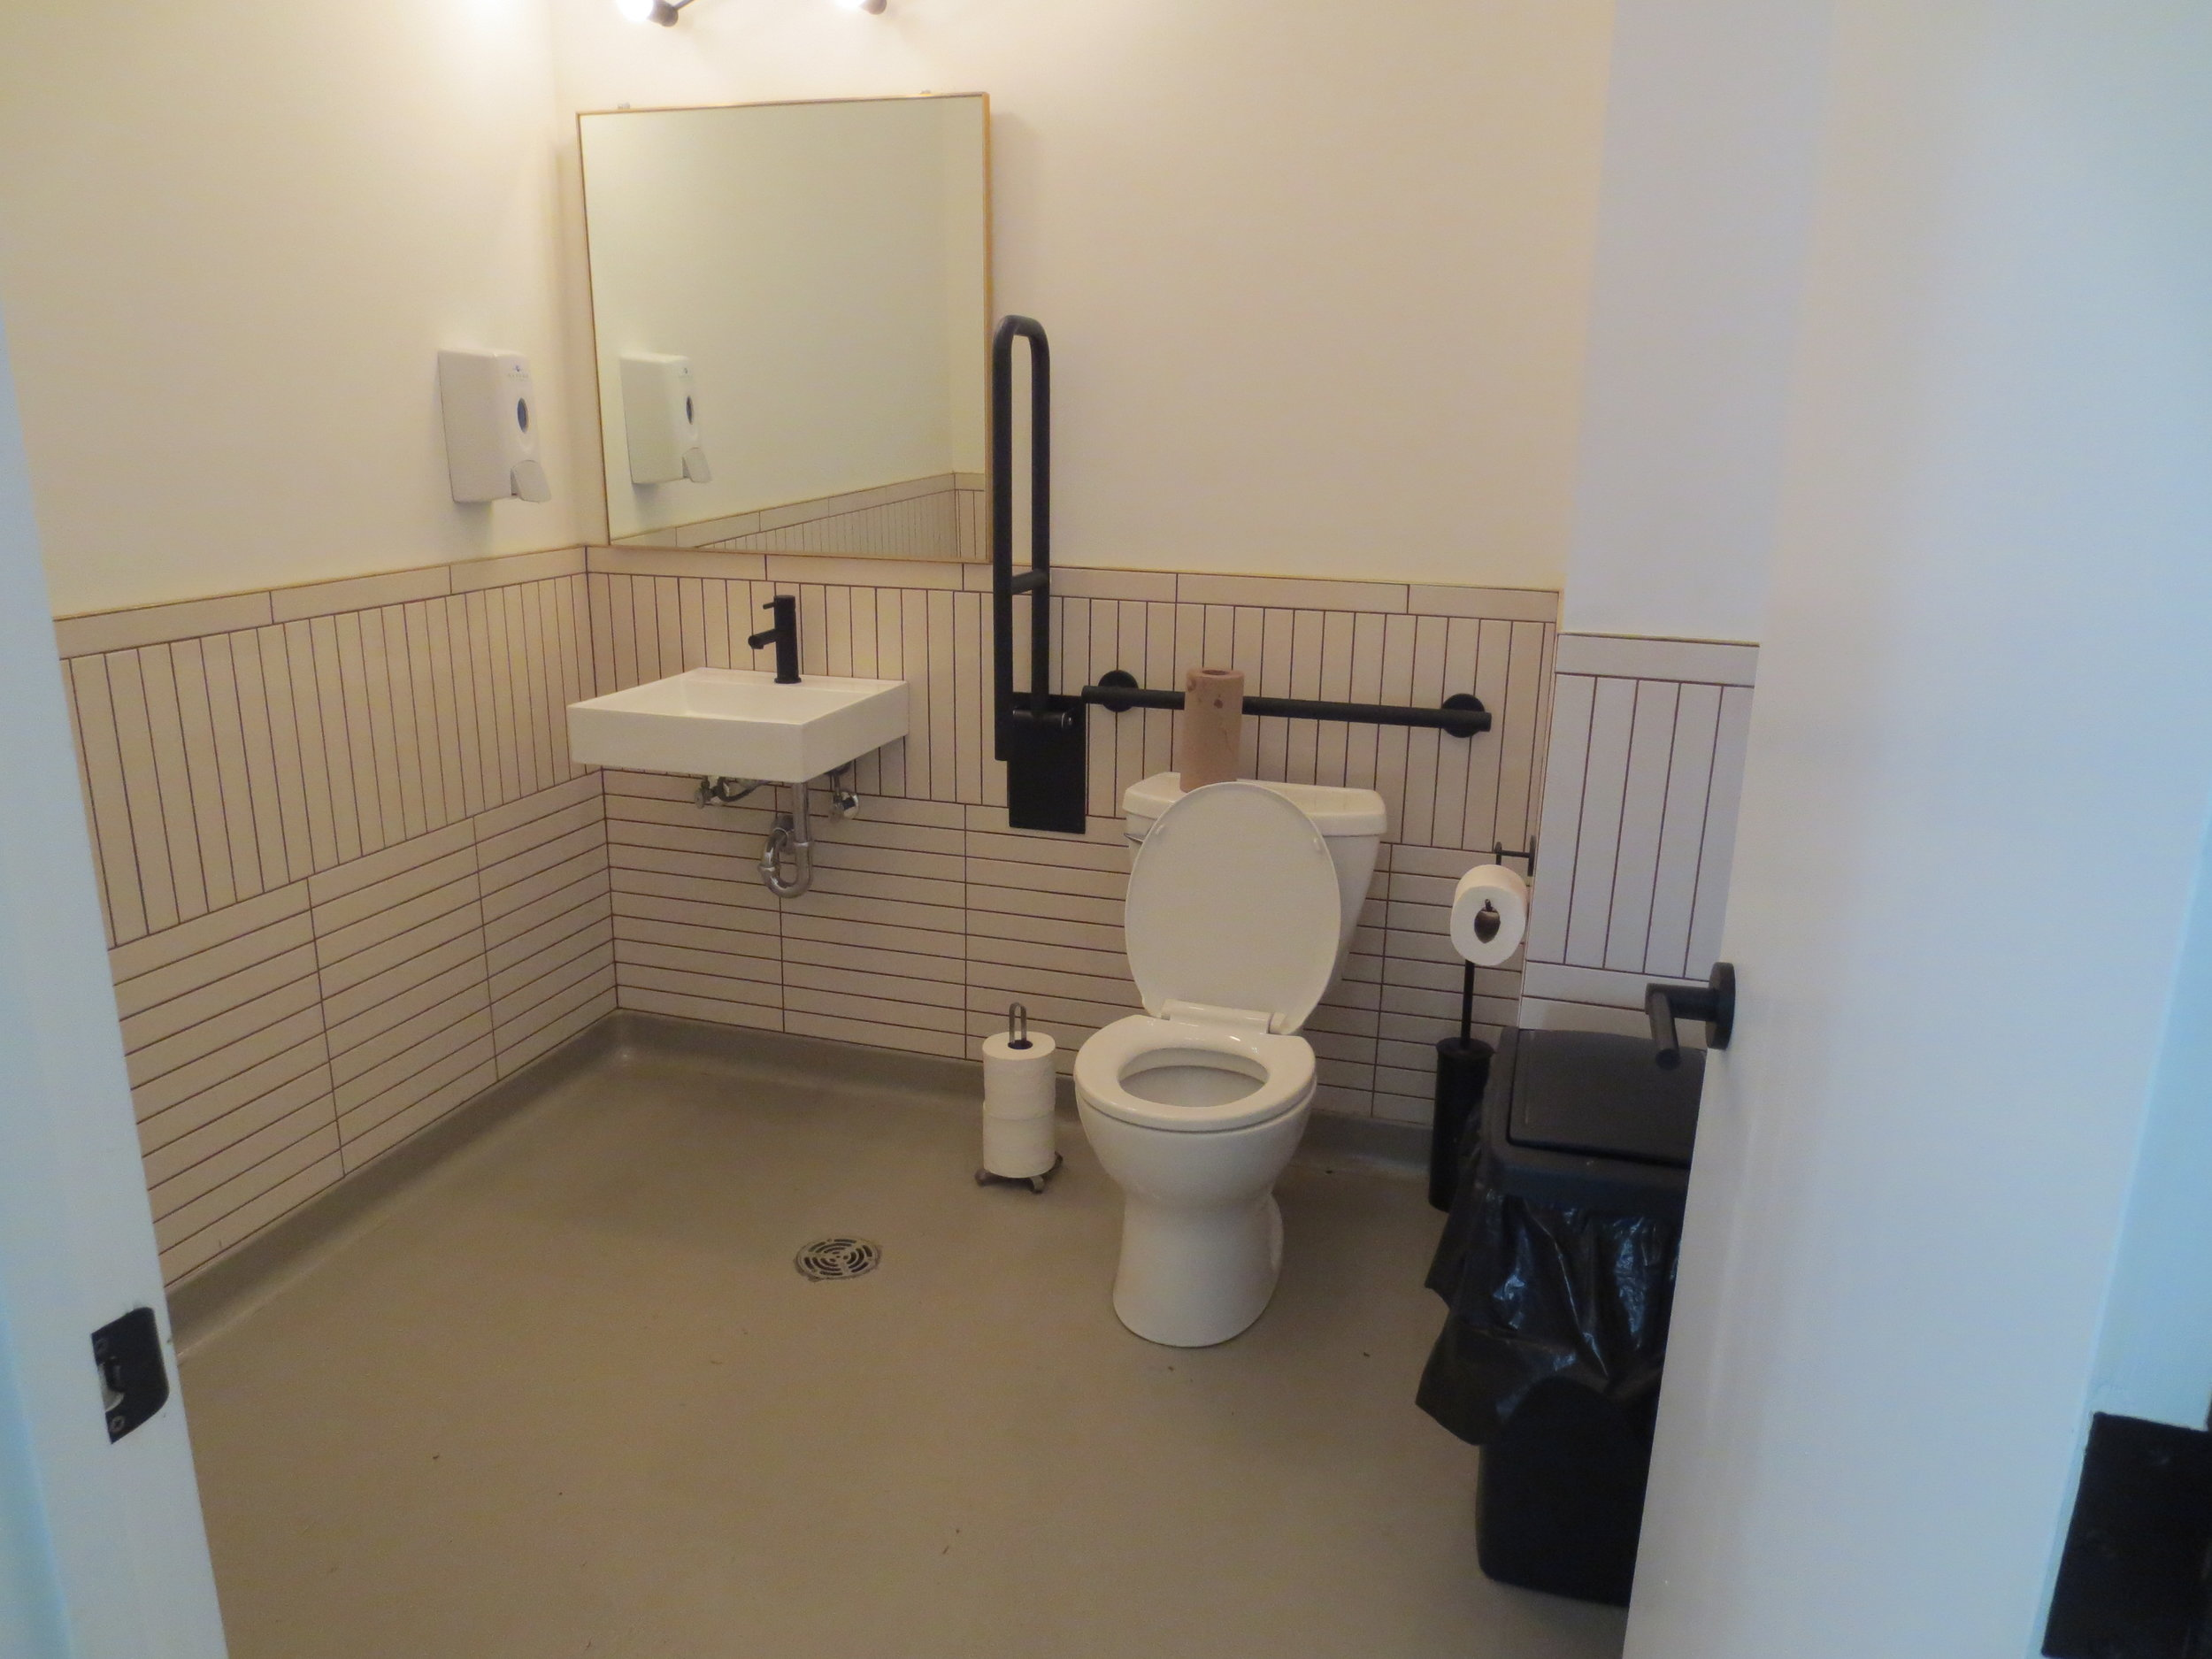 Picture of accessible washroom at The Goods